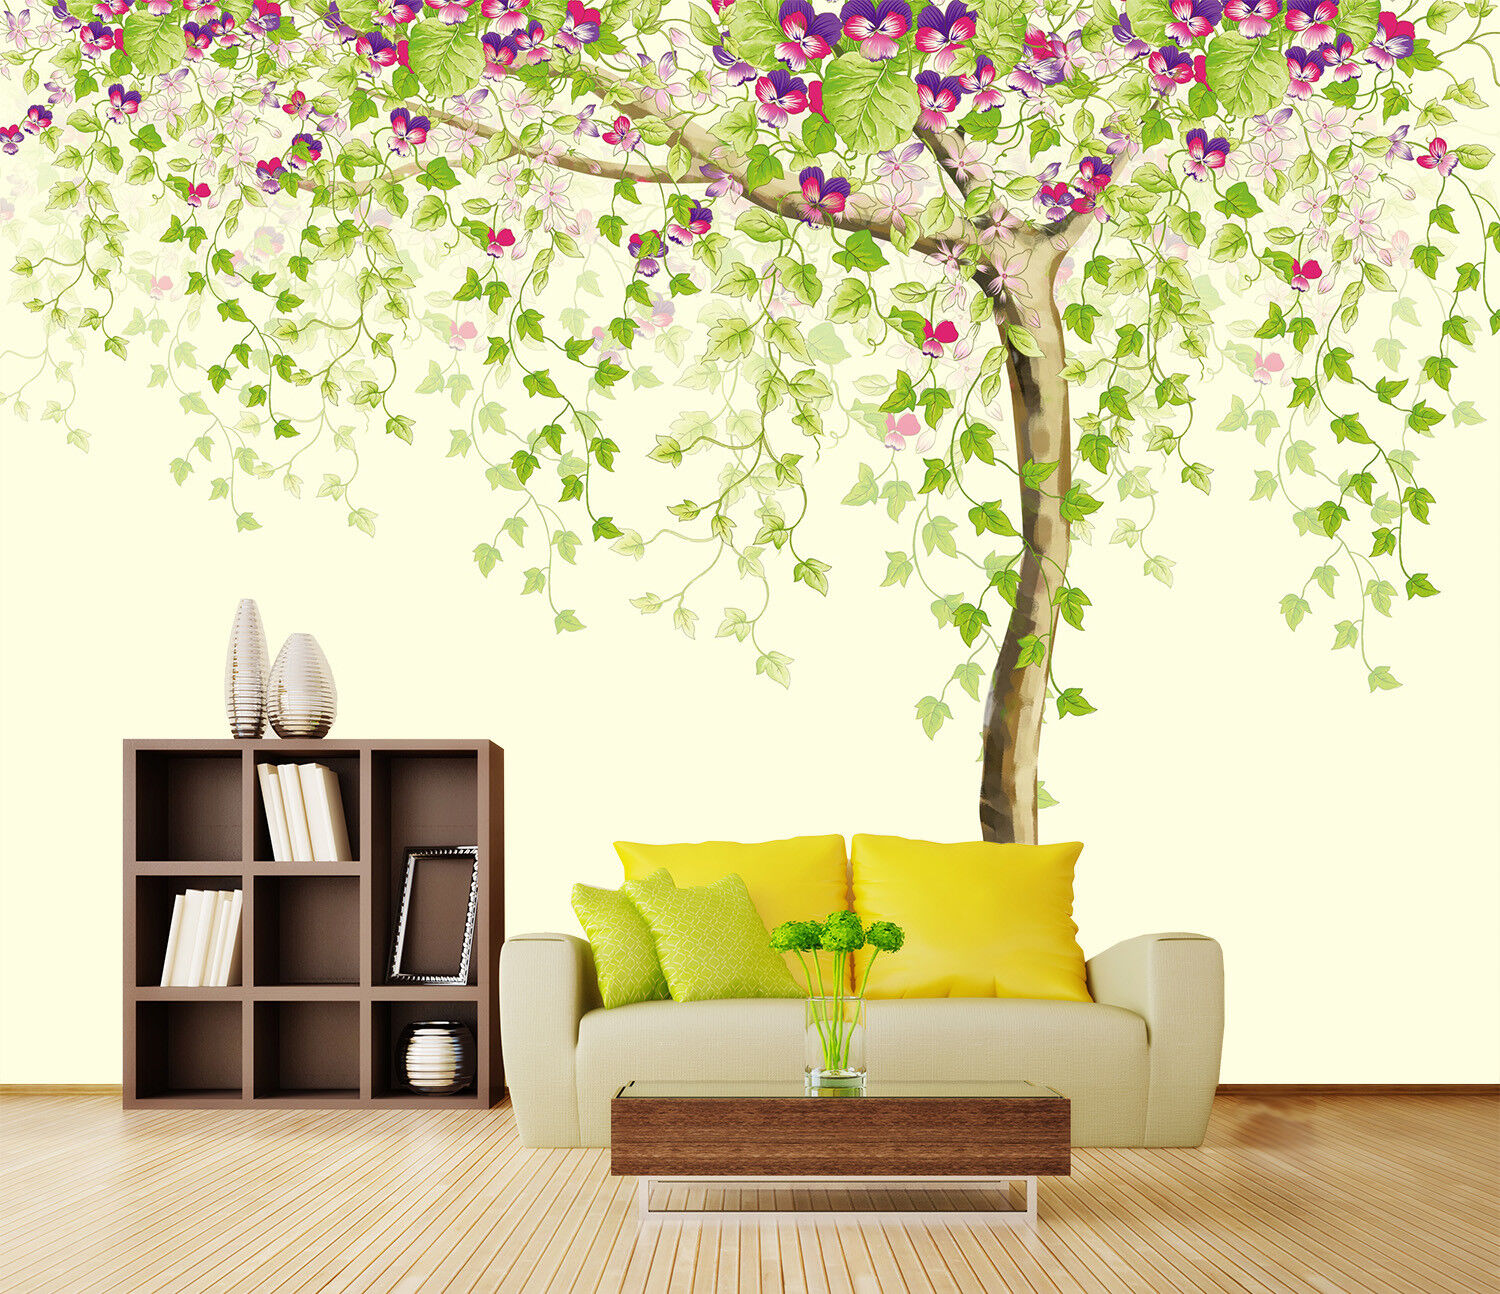 3D Paint Trees 425 Wallpaper Murals Wall Print Wallpaper Mural AJ WALLPAPER UK